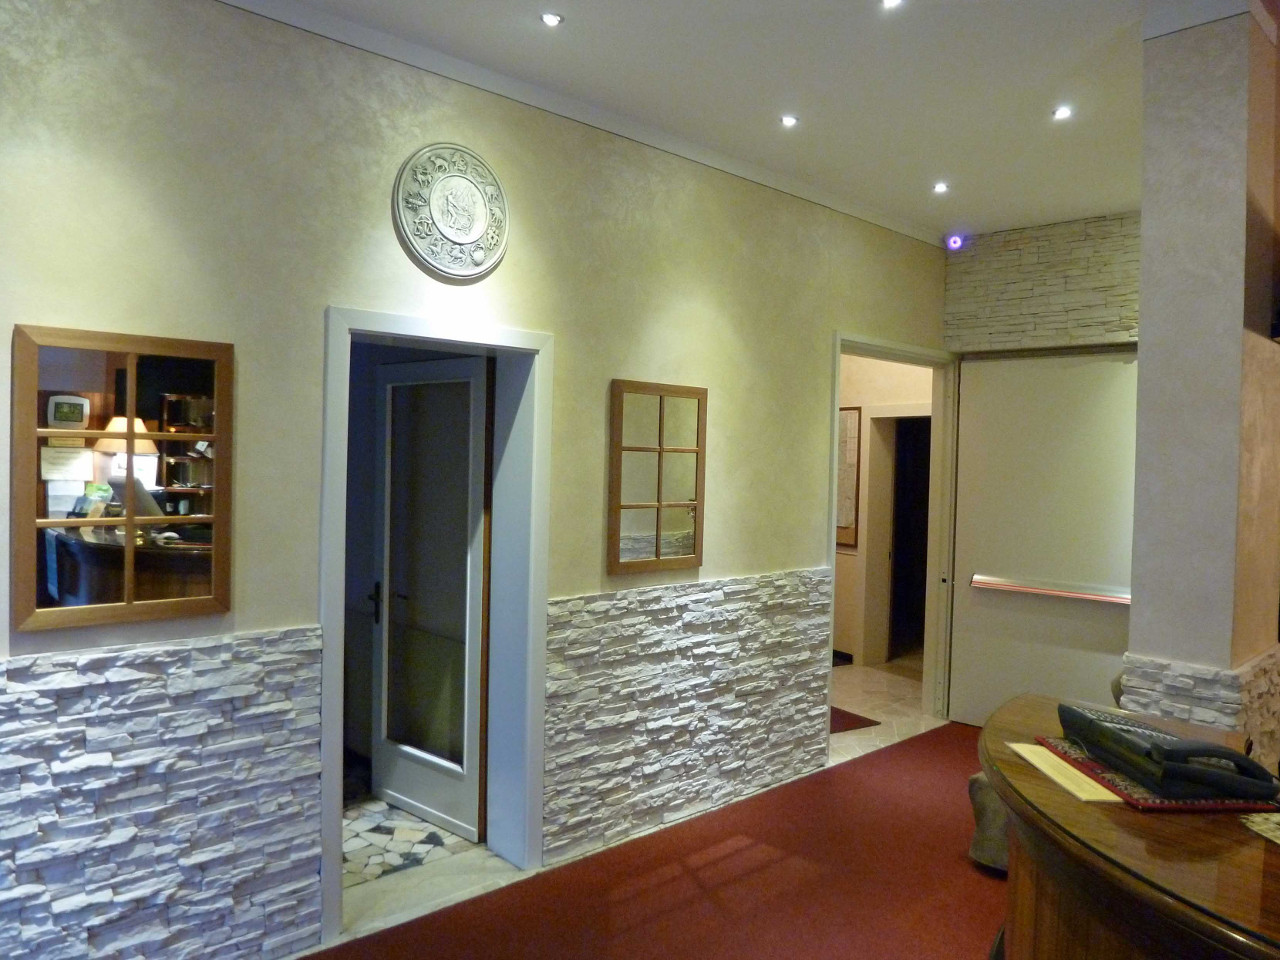 Reception Hotel Lanterna - Due Stelle - Abano Terme